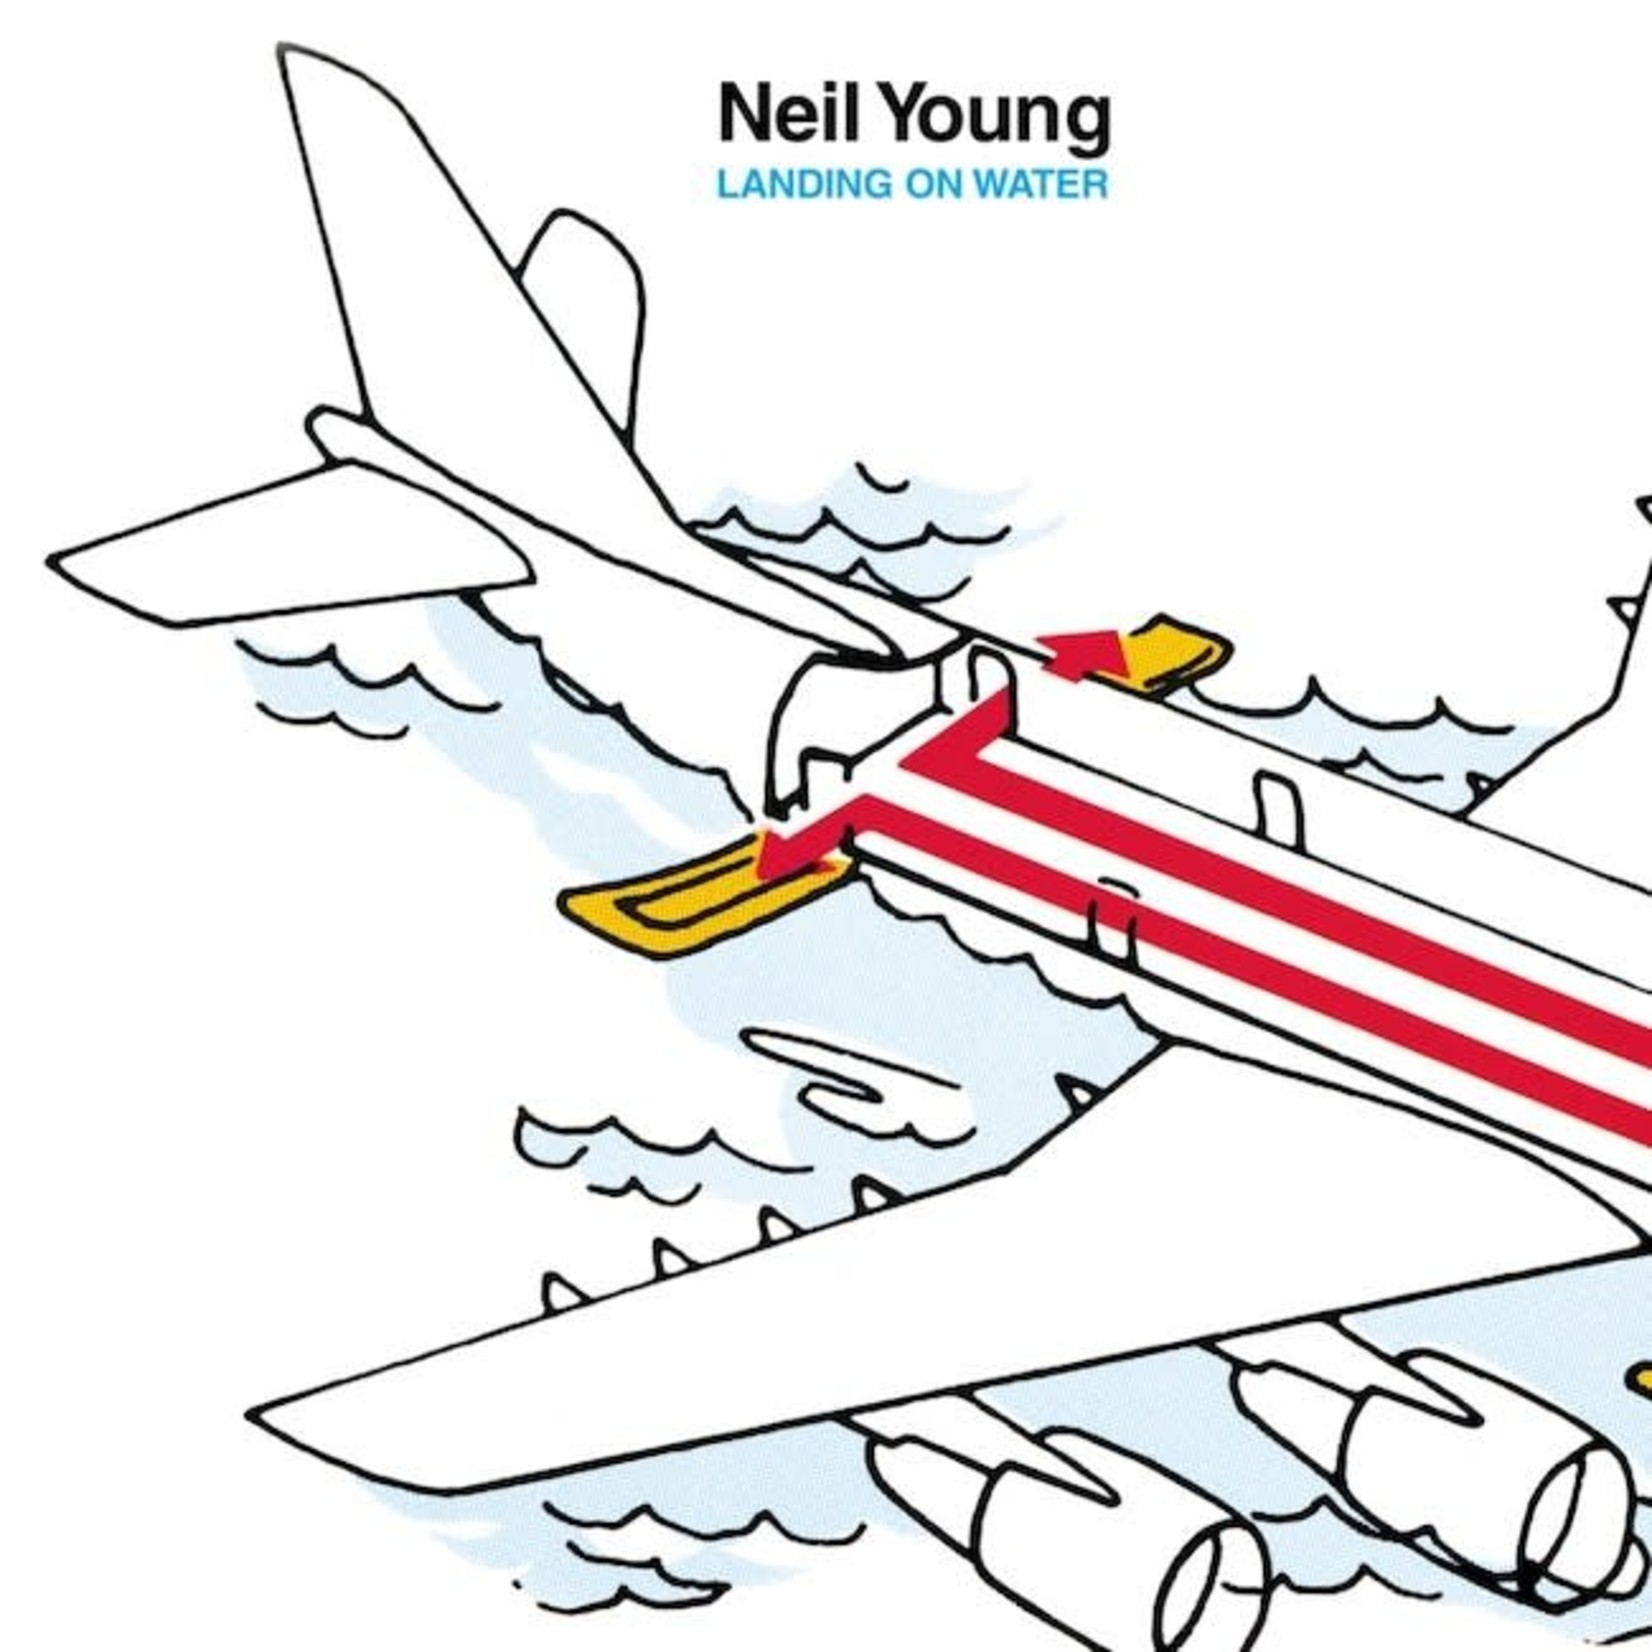 [Vintage] Young, Neil: Landing on Water